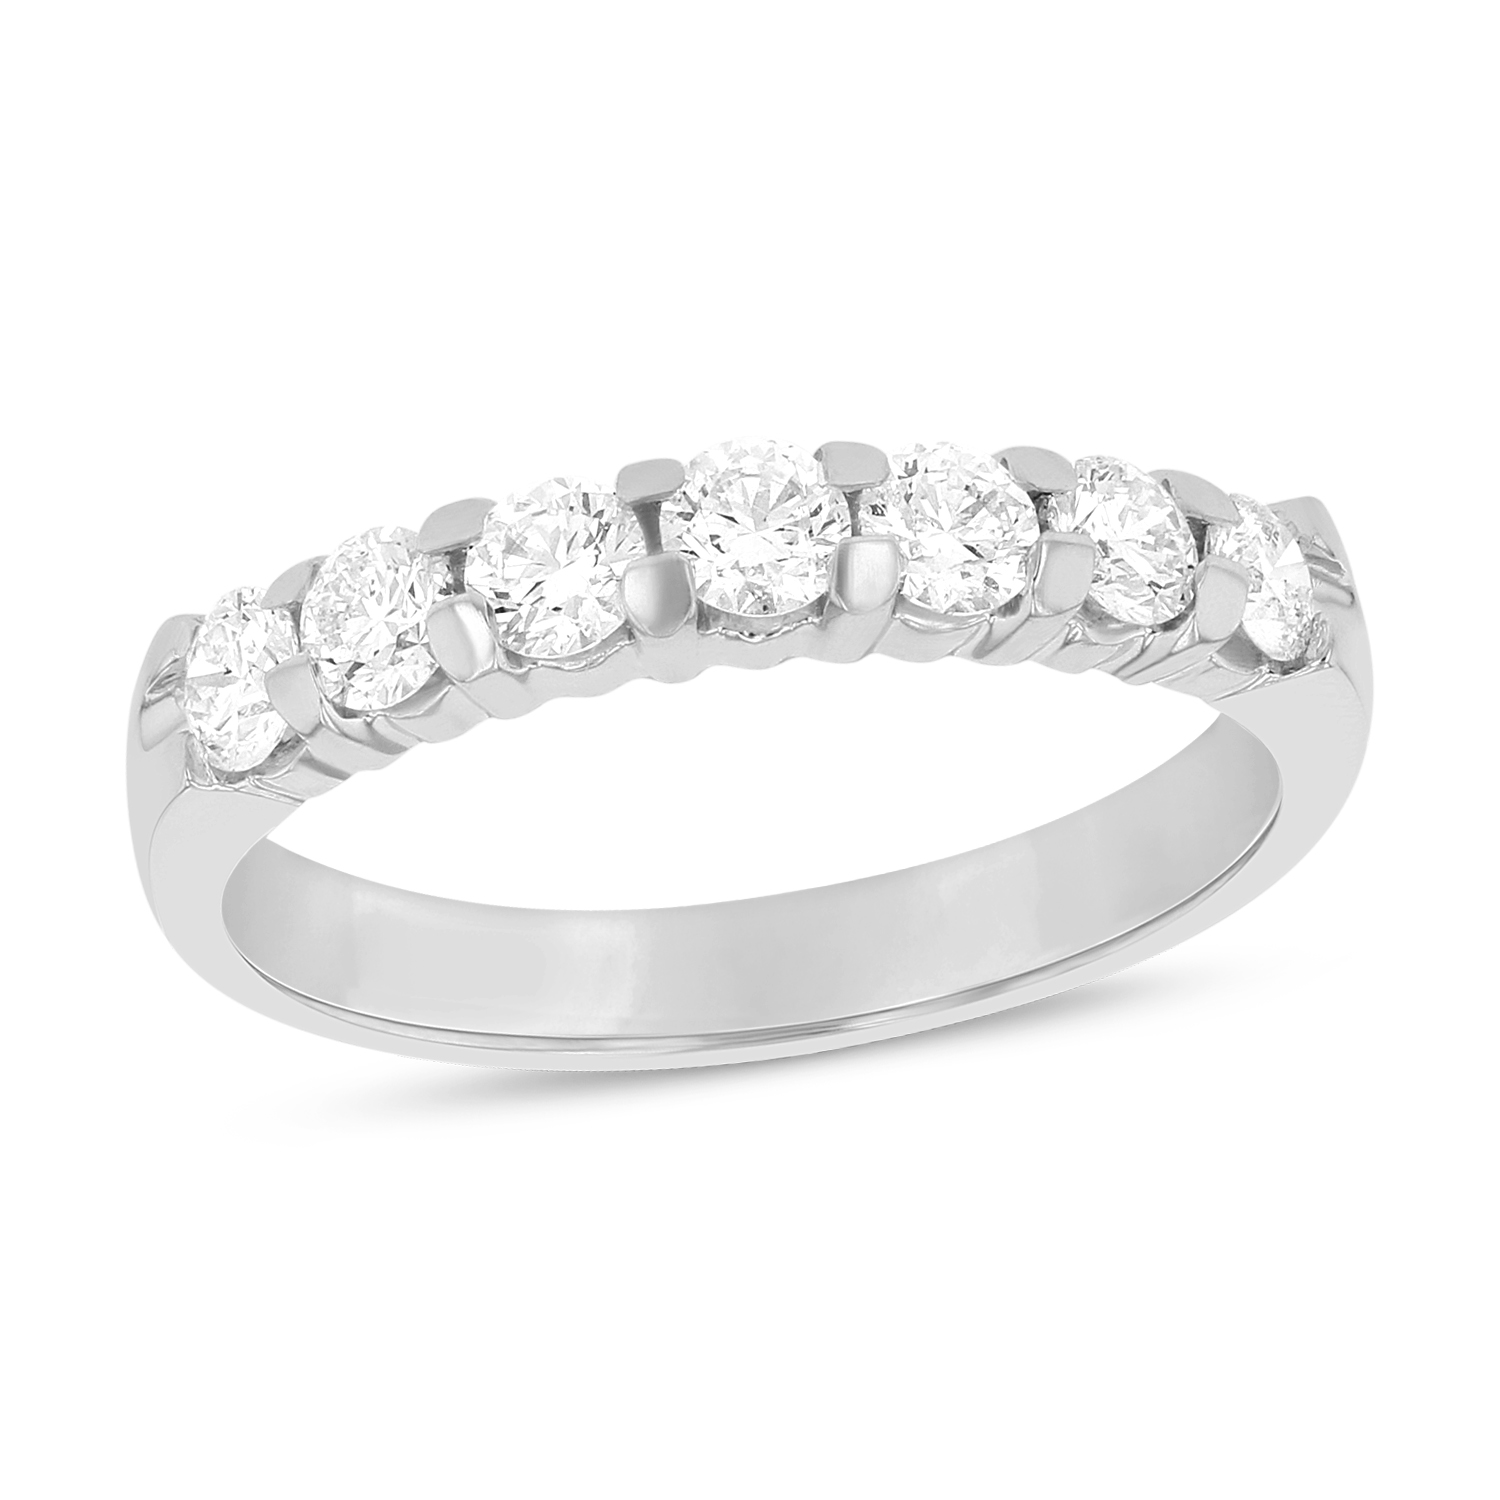 stone rings rose anniversary diamond princess band rg jewelry in wedding with nl custom white gold